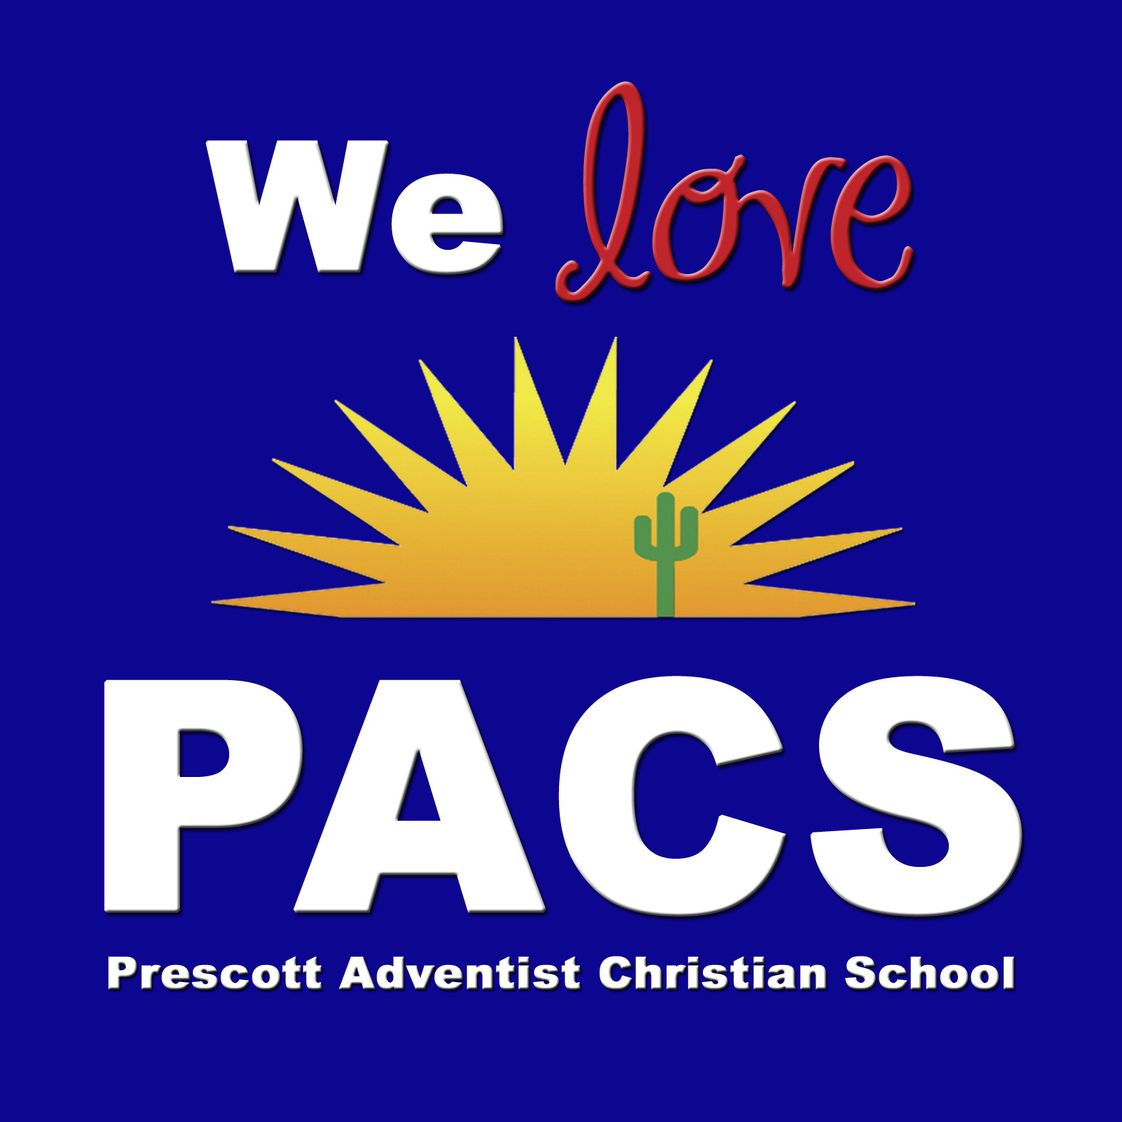 Prescott Adventist Christian School Photo